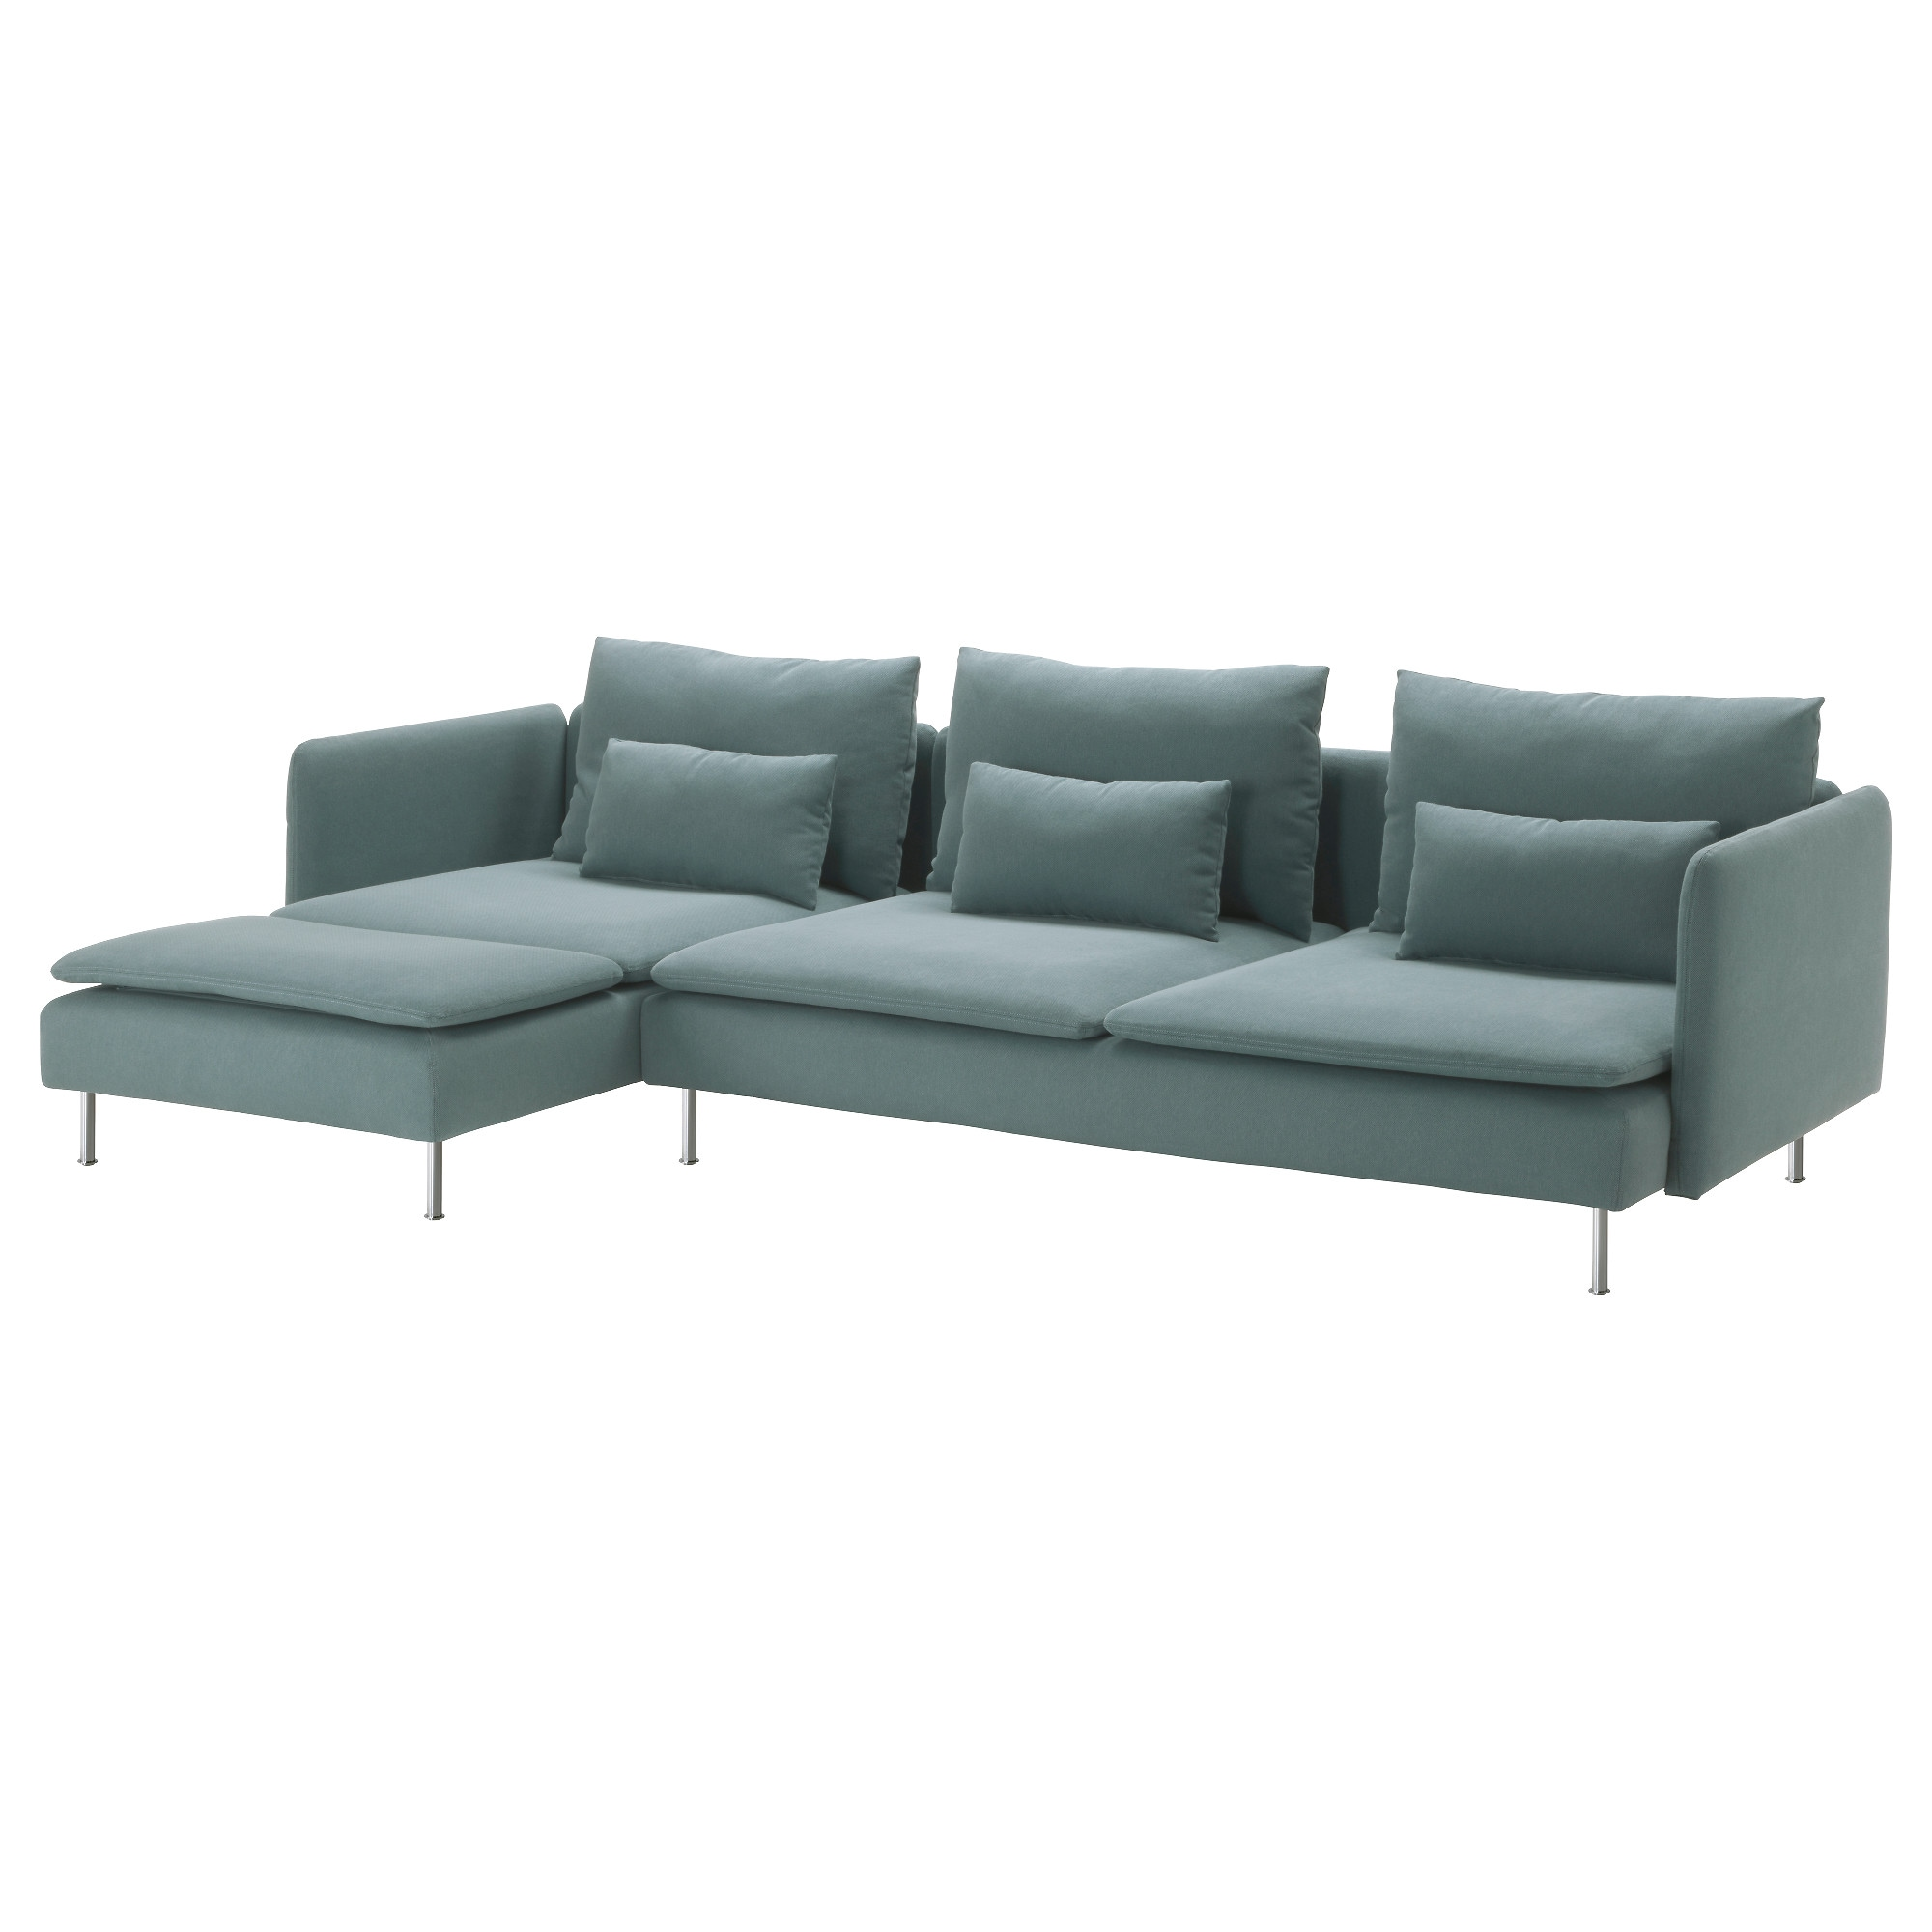 SÖDERHAMN sectional 4-seat Finnsta with chaise Finnsta turquoise Width 114  sc 1 st  Ikea : sectional sofas images - Sectionals, Sofas & Couches